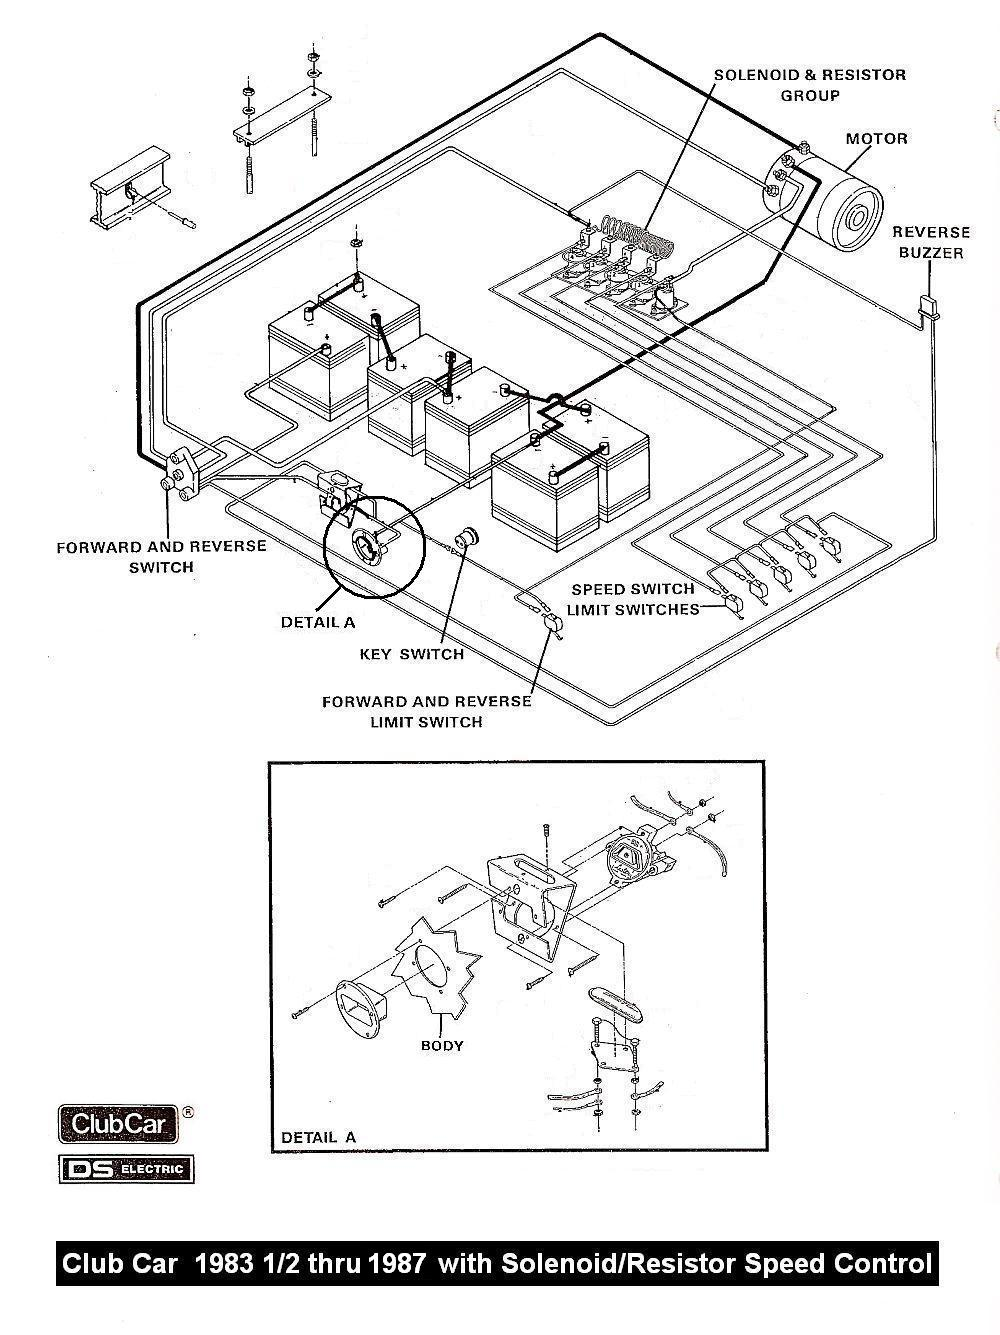 medium resolution of 1983 club car wiring diagram wiring diagram portal john deere wiring diagram club car 36v wiring diagram